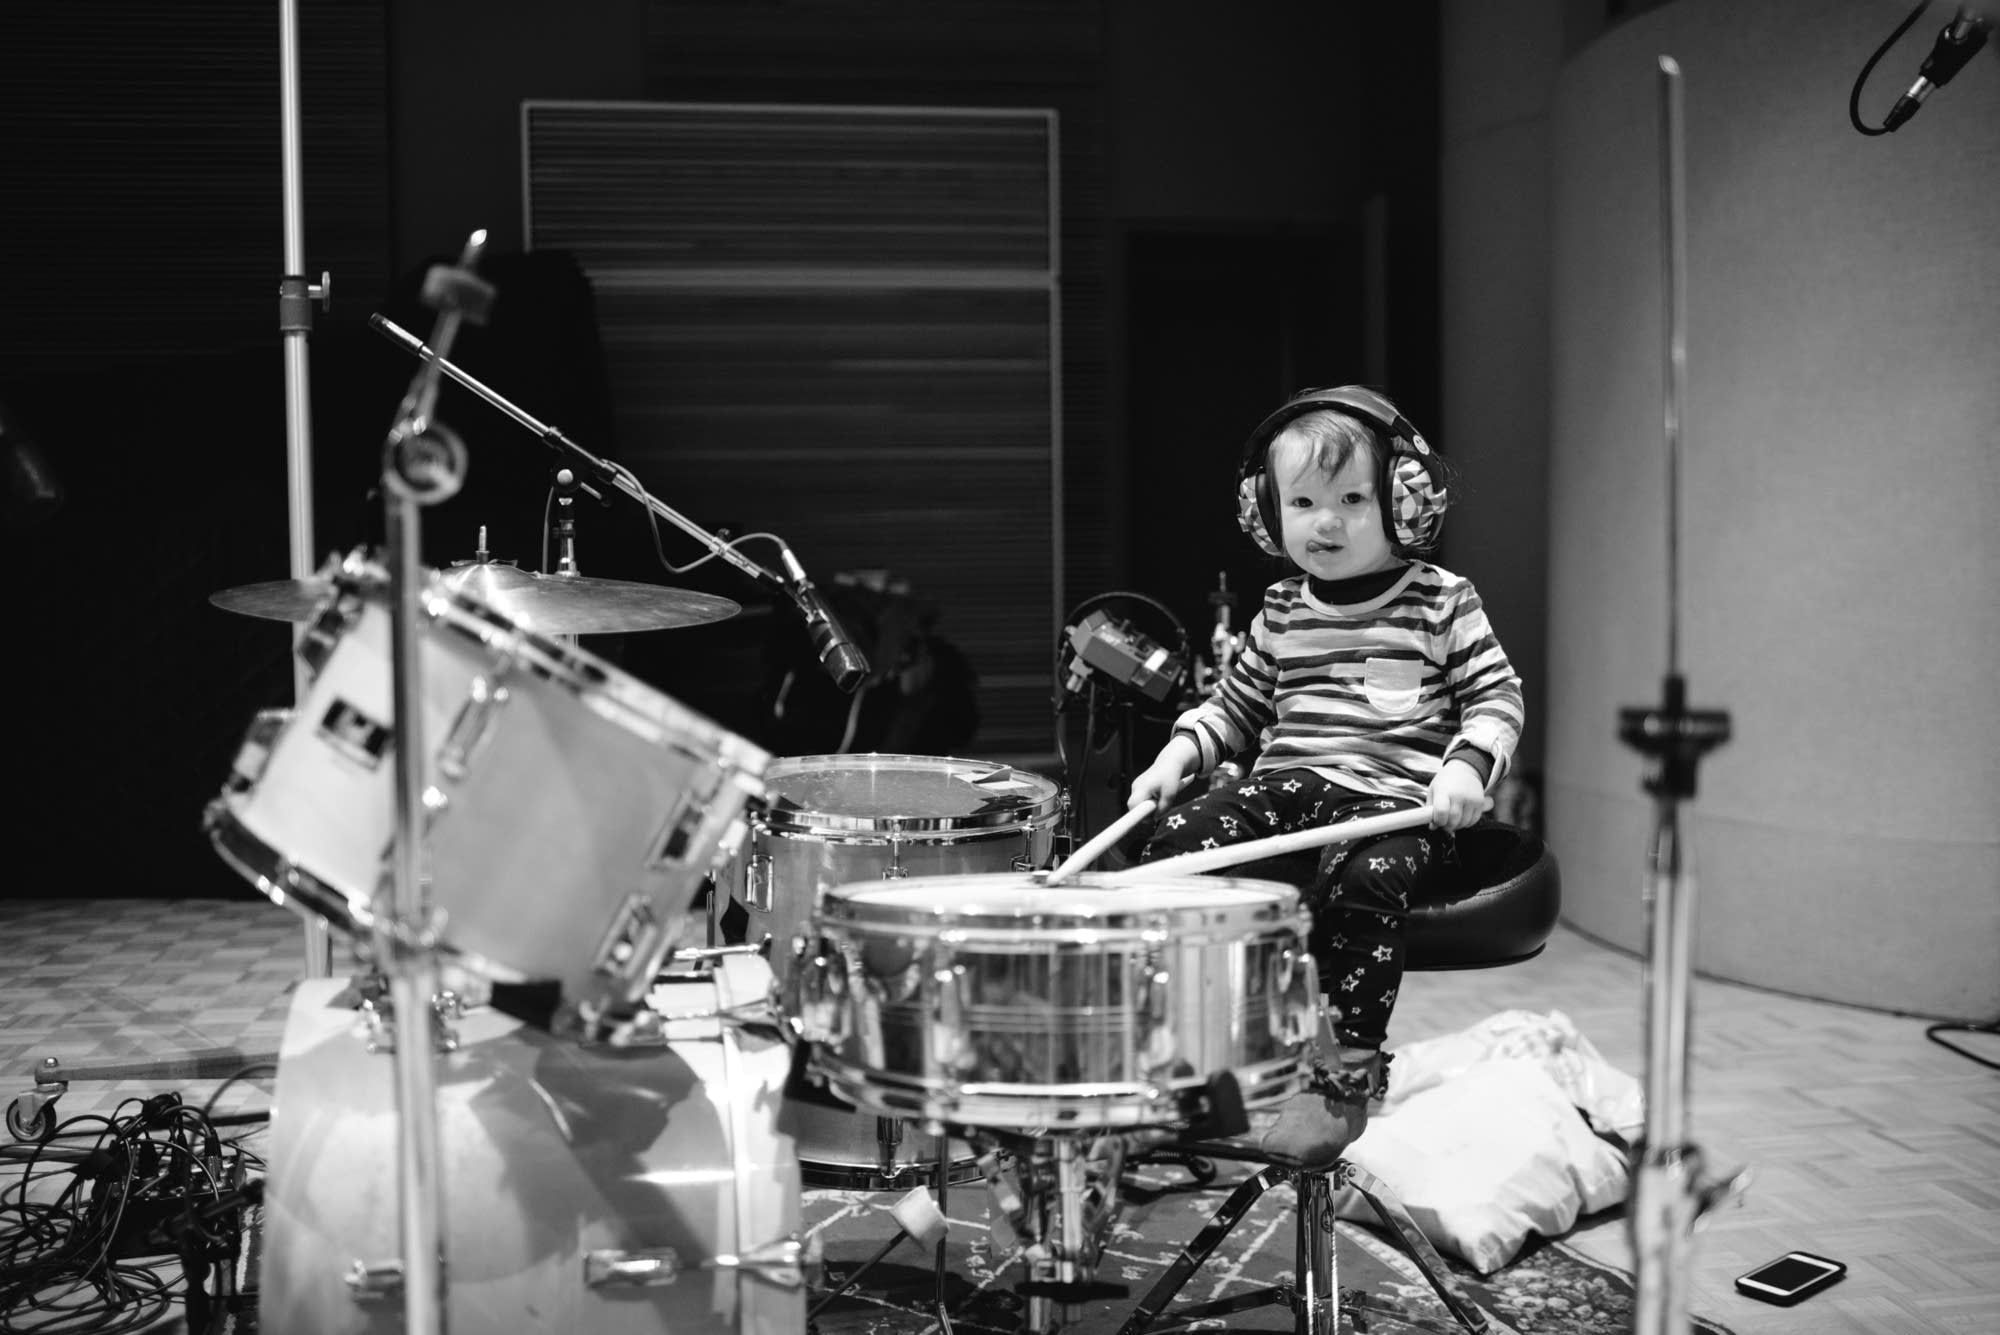 Deap Vally perform in The Current studio